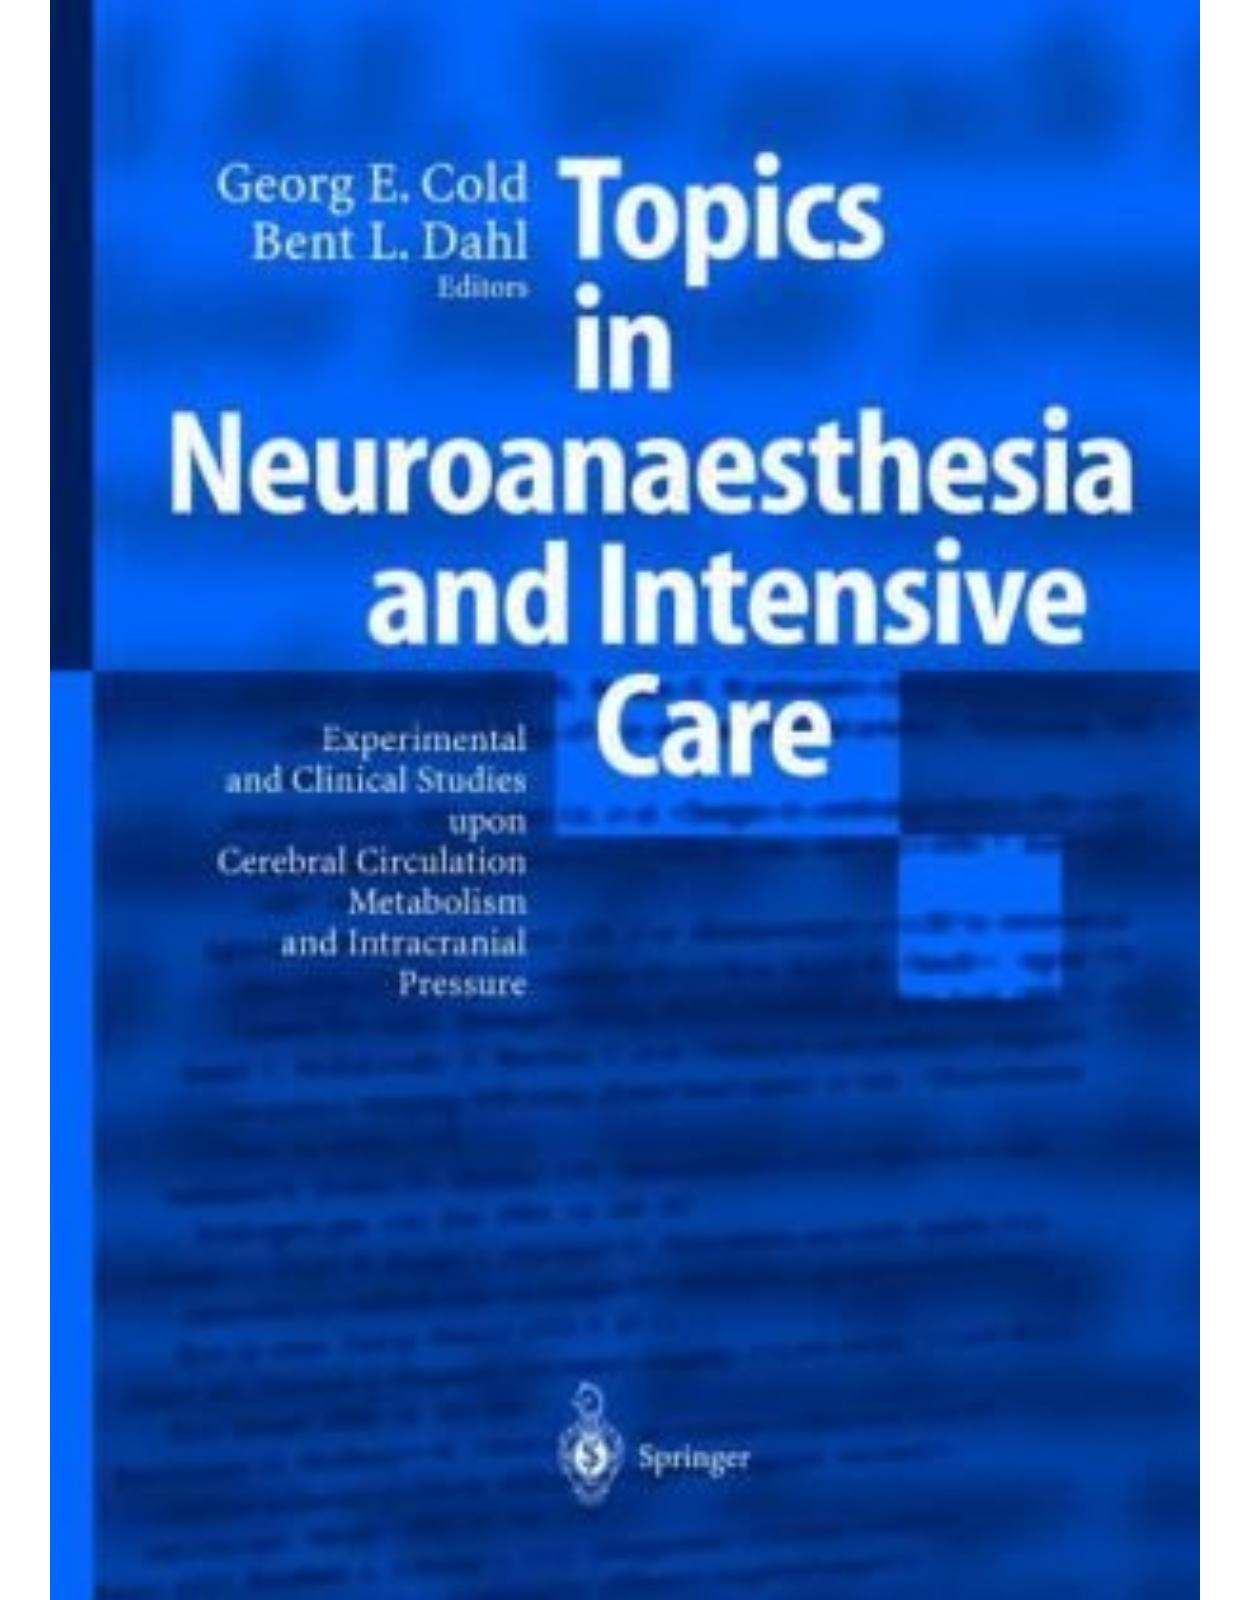 Topics in Neuroanaesthesia and Intensive Care